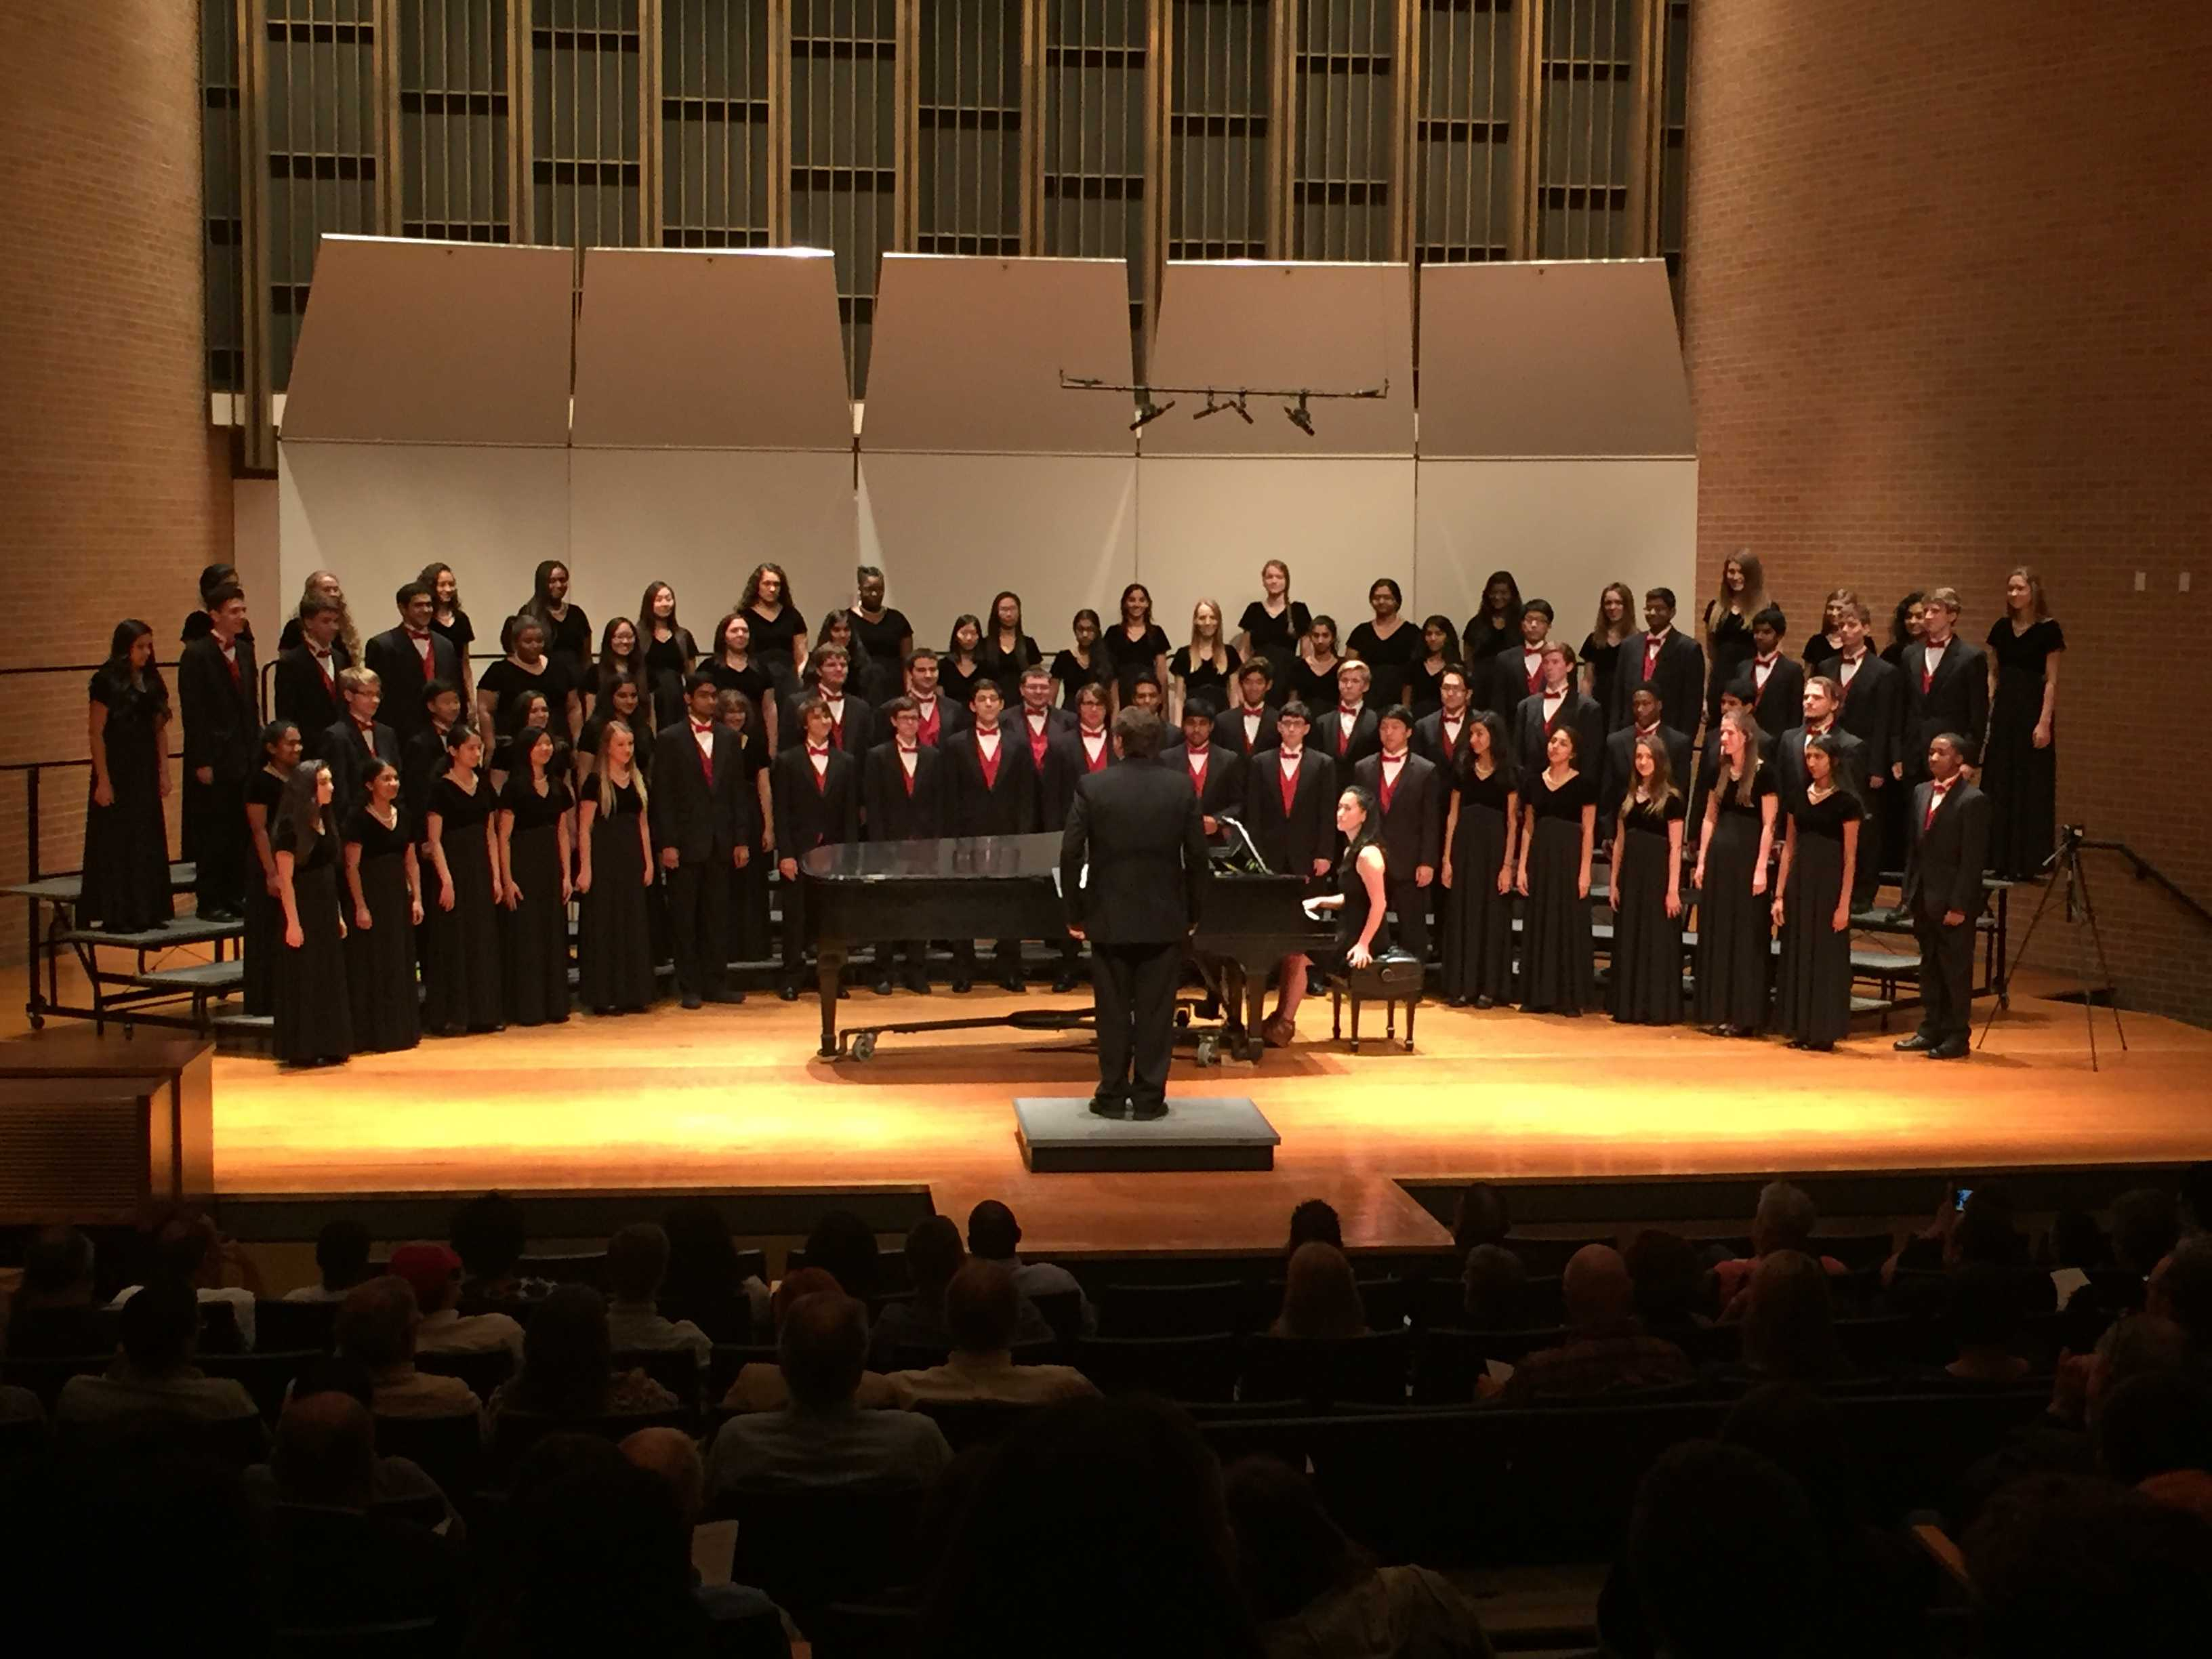 The Coppell High School A Cappella choir performs at UT Arlington on Oct. 6. The choir performed alongside the university's own A Cappella choir. Photo courtesy CHS Choir Director Joshua Brown.